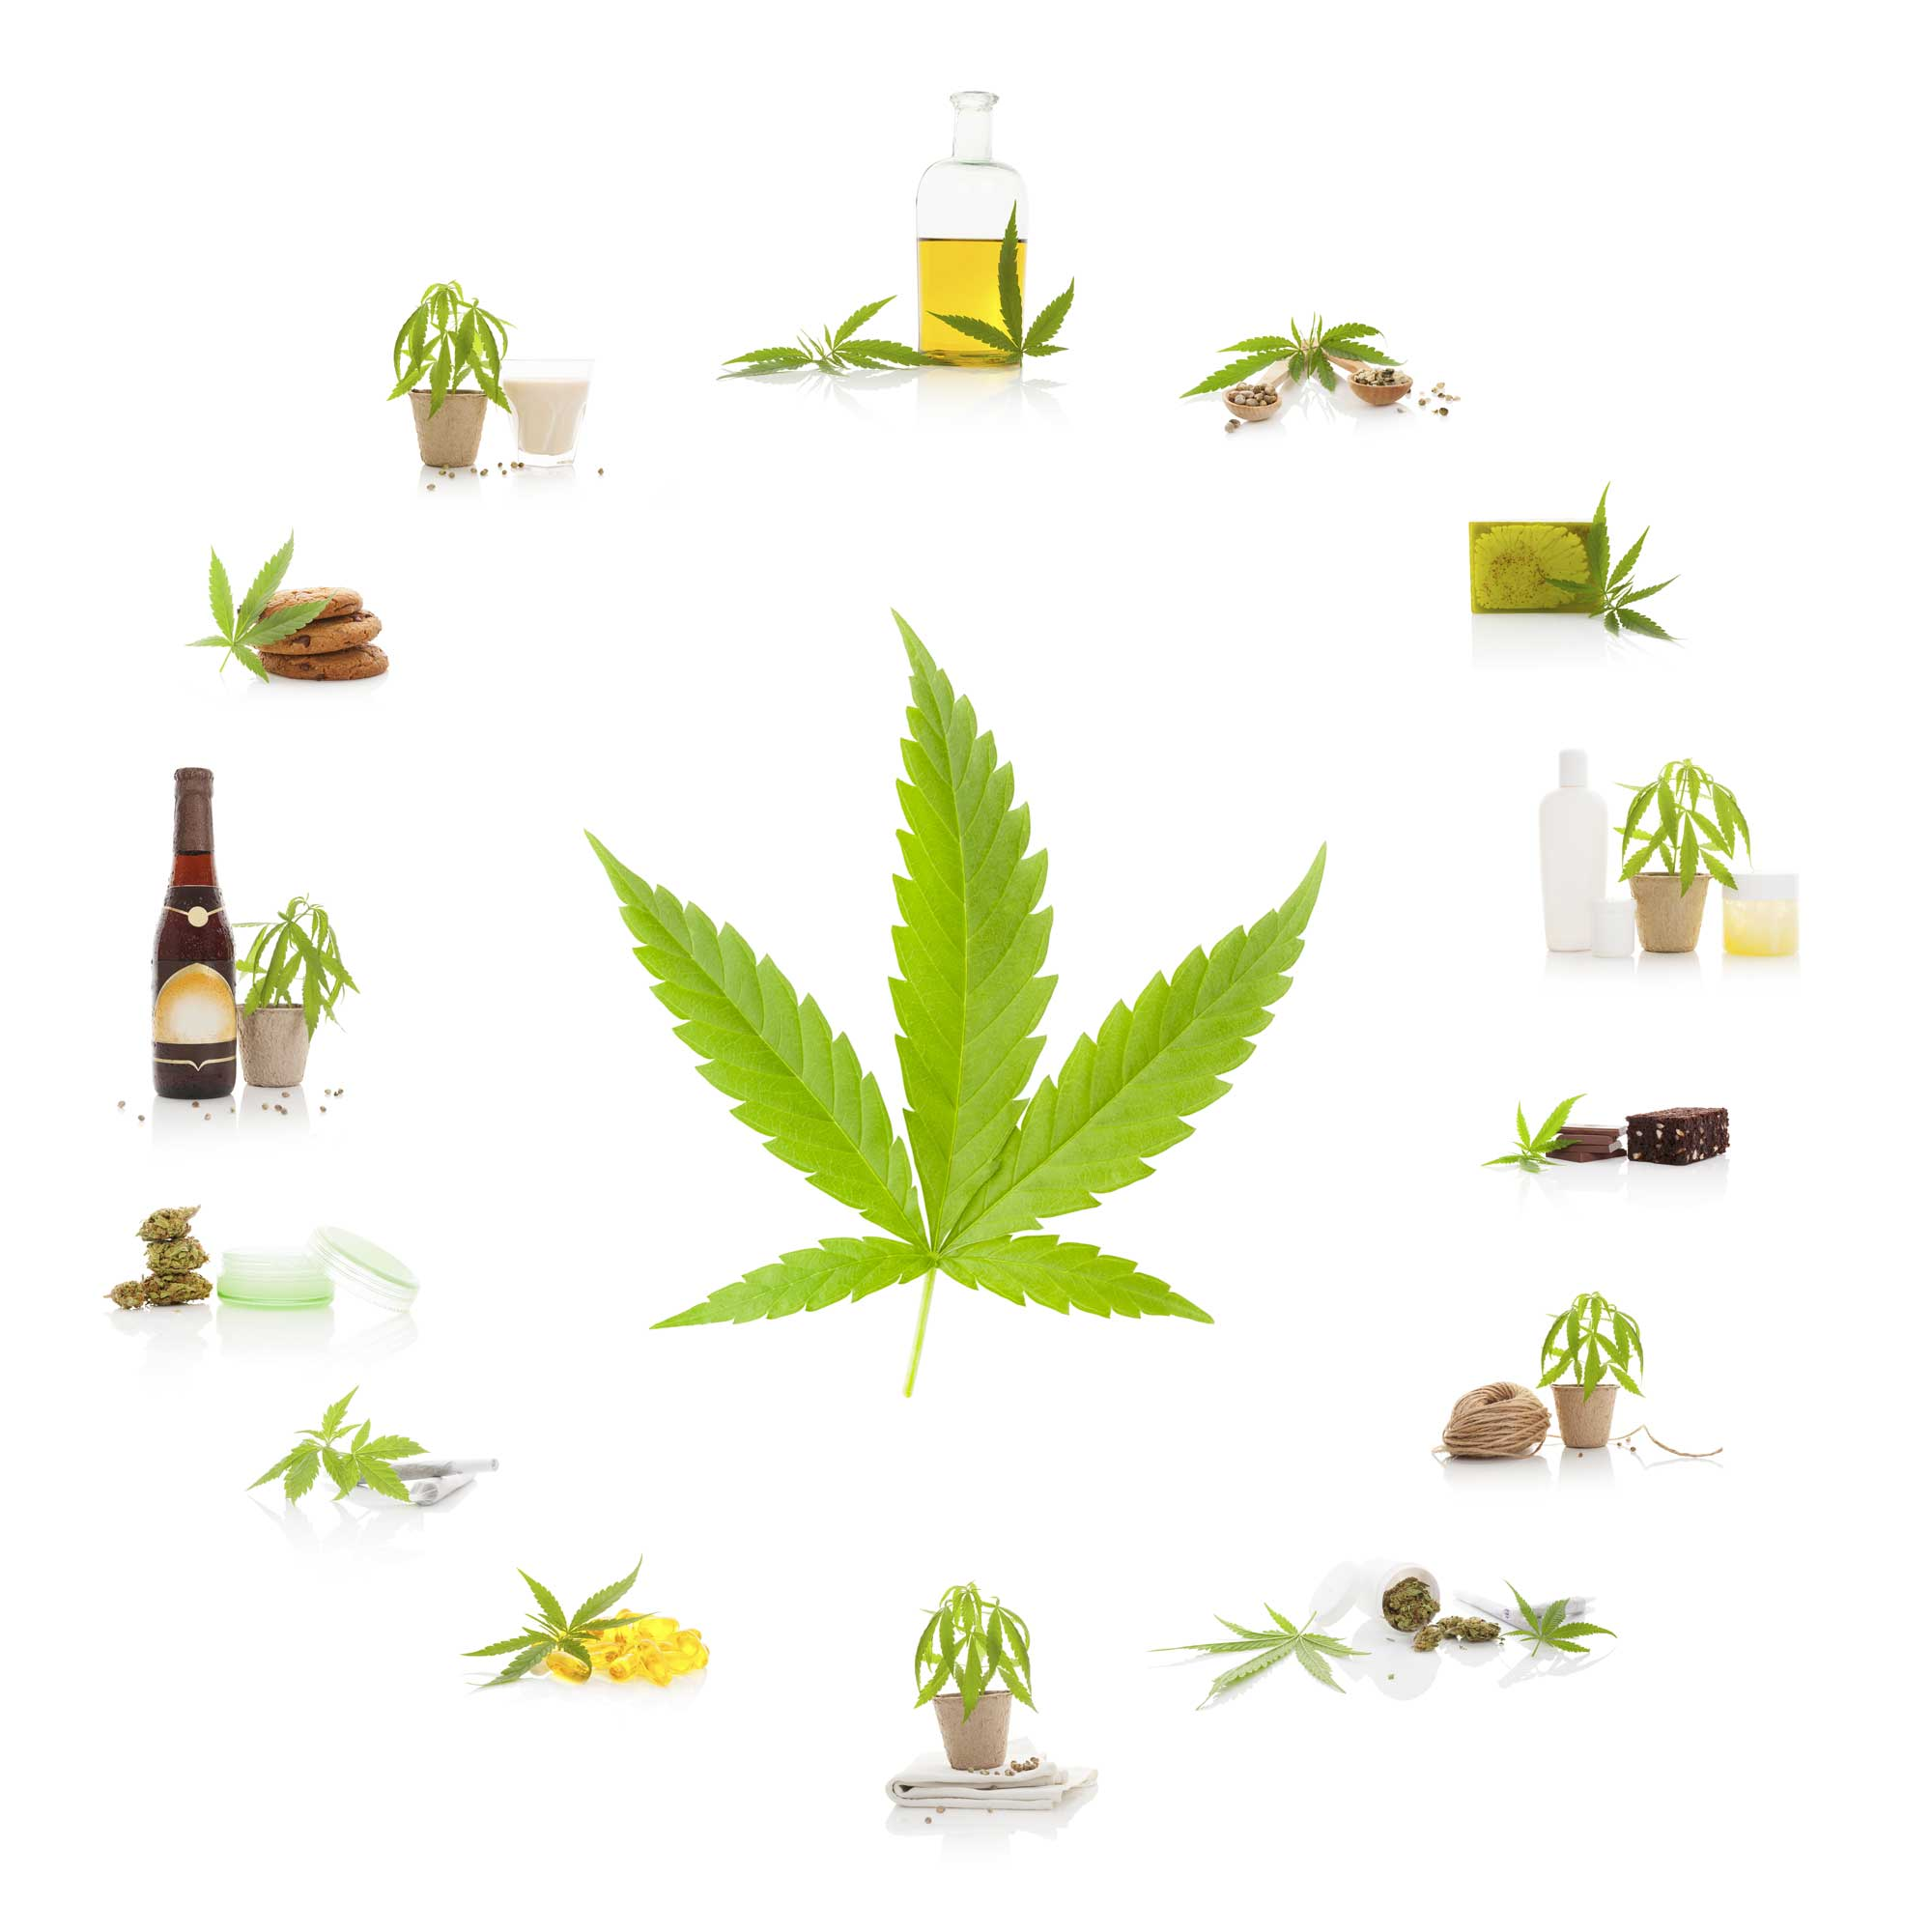 Cannabinoids Facts